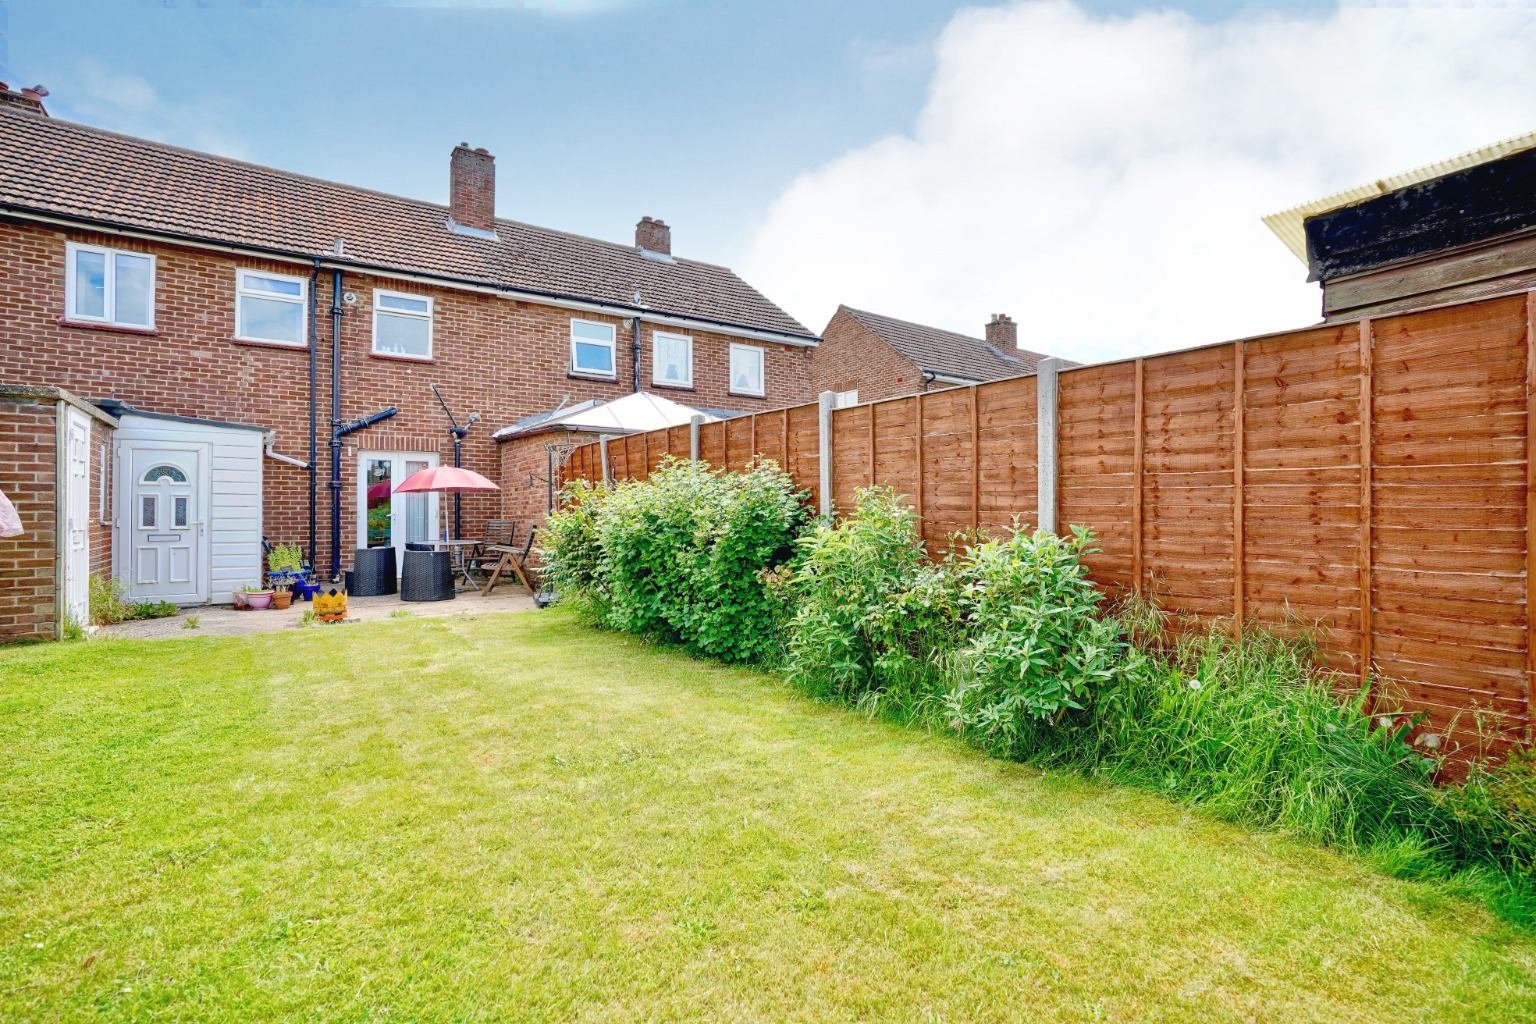 3 bed terraced house for sale in Leys Road, St. Neots  - Property Image 3